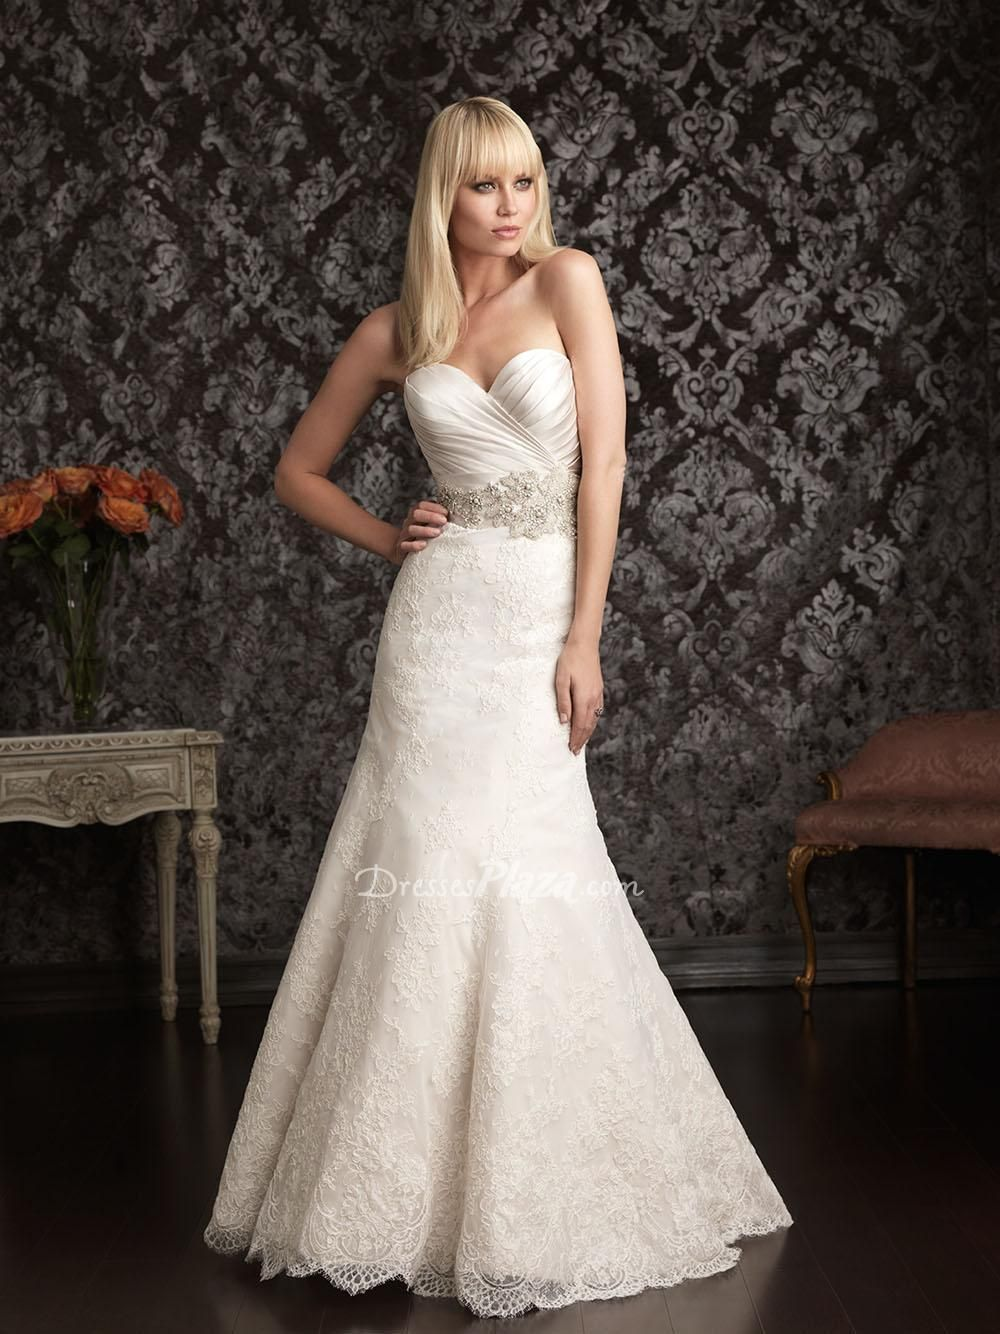 Sweetheart Strapless Ruched Satin Bodice Slim A Line Lace Skirt Bridal Gown